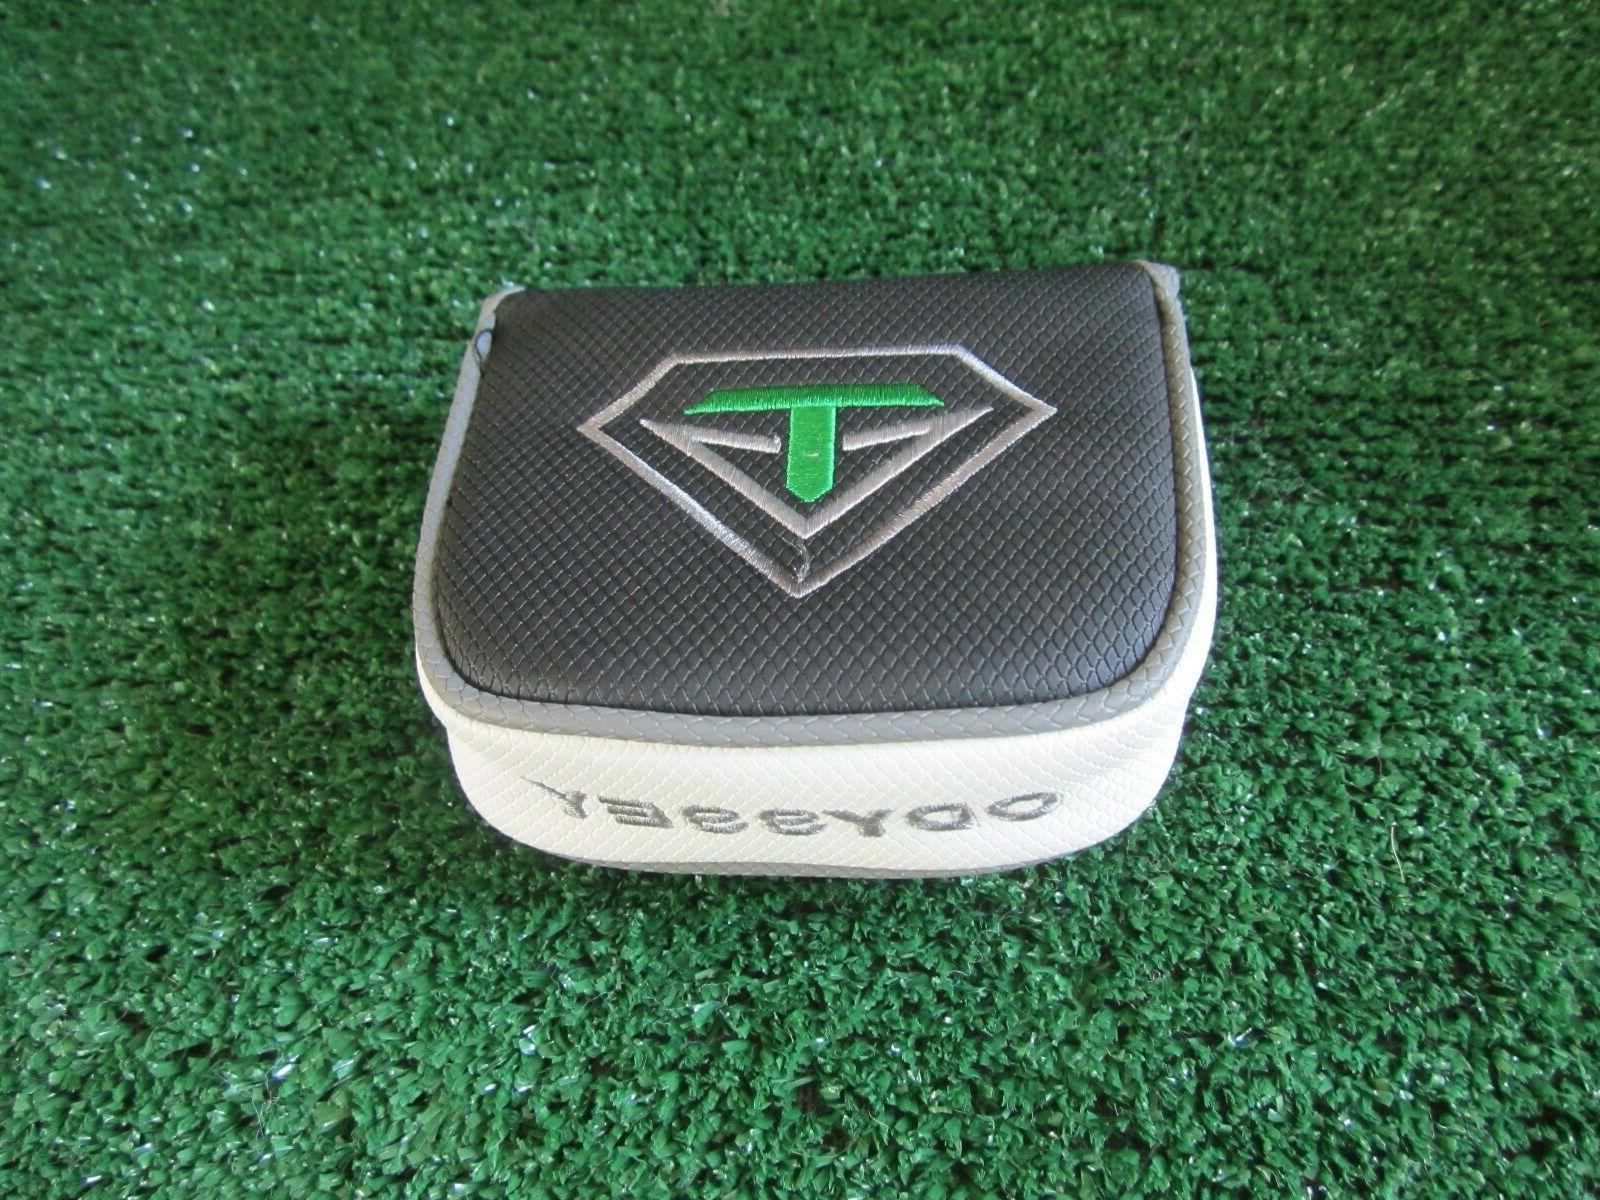 toulon design small mallet putter cover